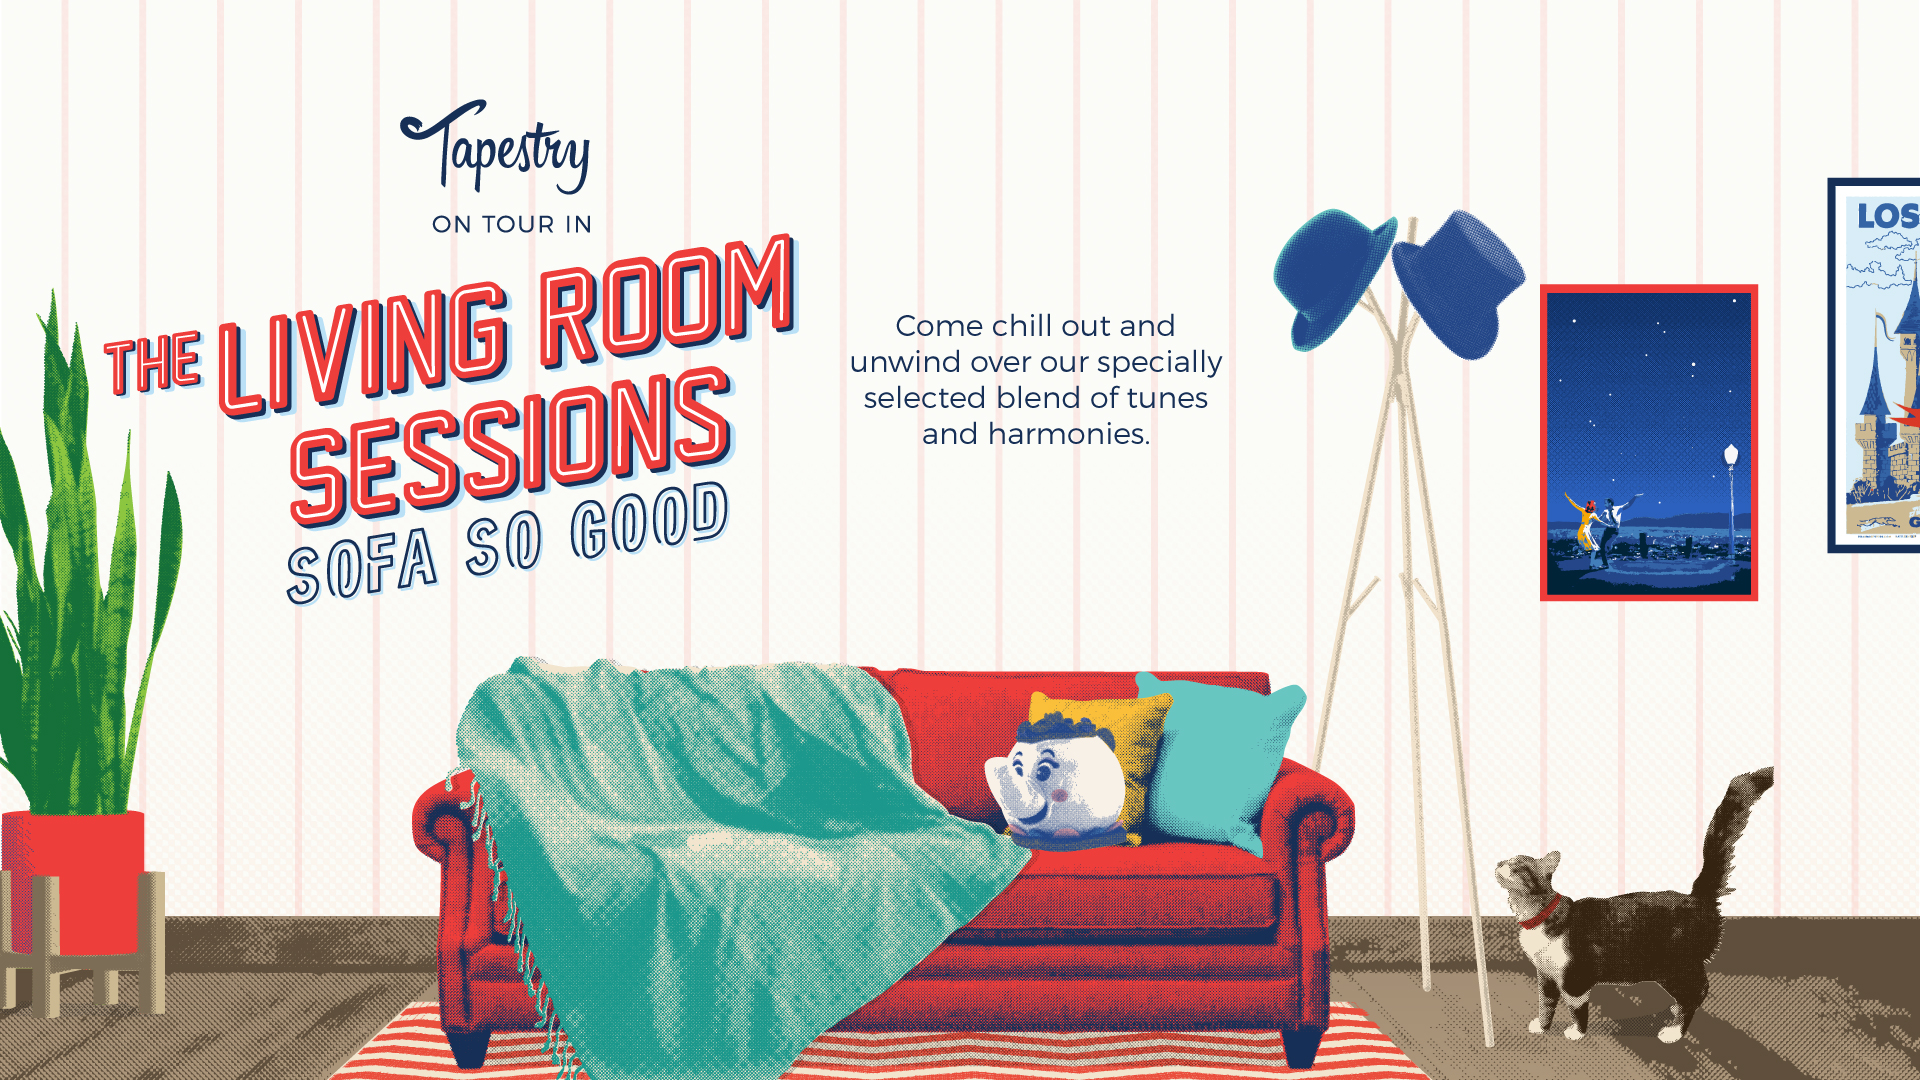 NEW: TICKETS FOR THE LIVING ROOM SESSIONS 2018 – Tapestry